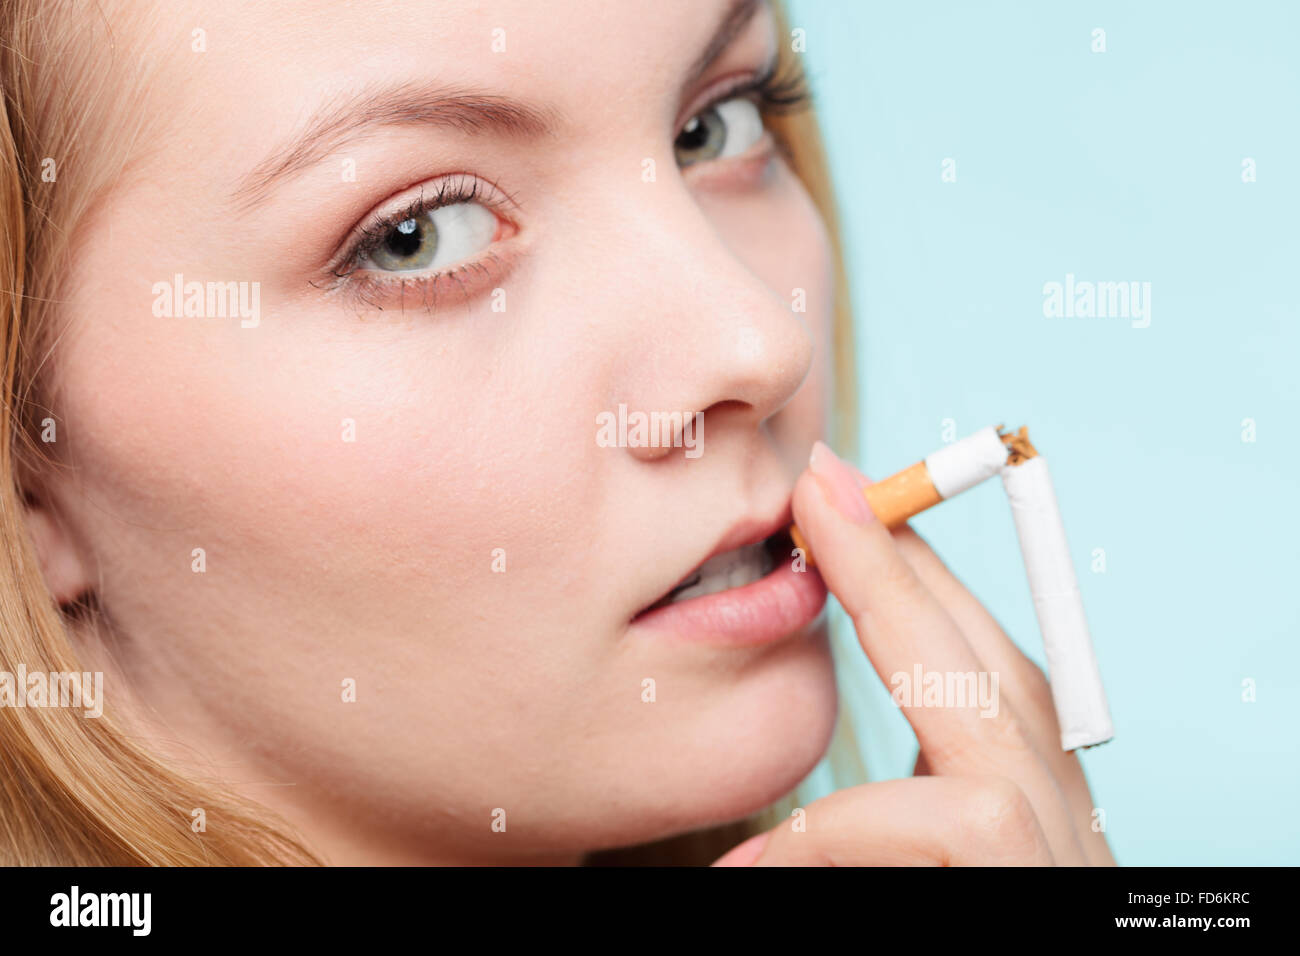 Smilling pretty girl smoking breaked down cigarette. Winning with addicted nicotine problems in young age. - Stock Image